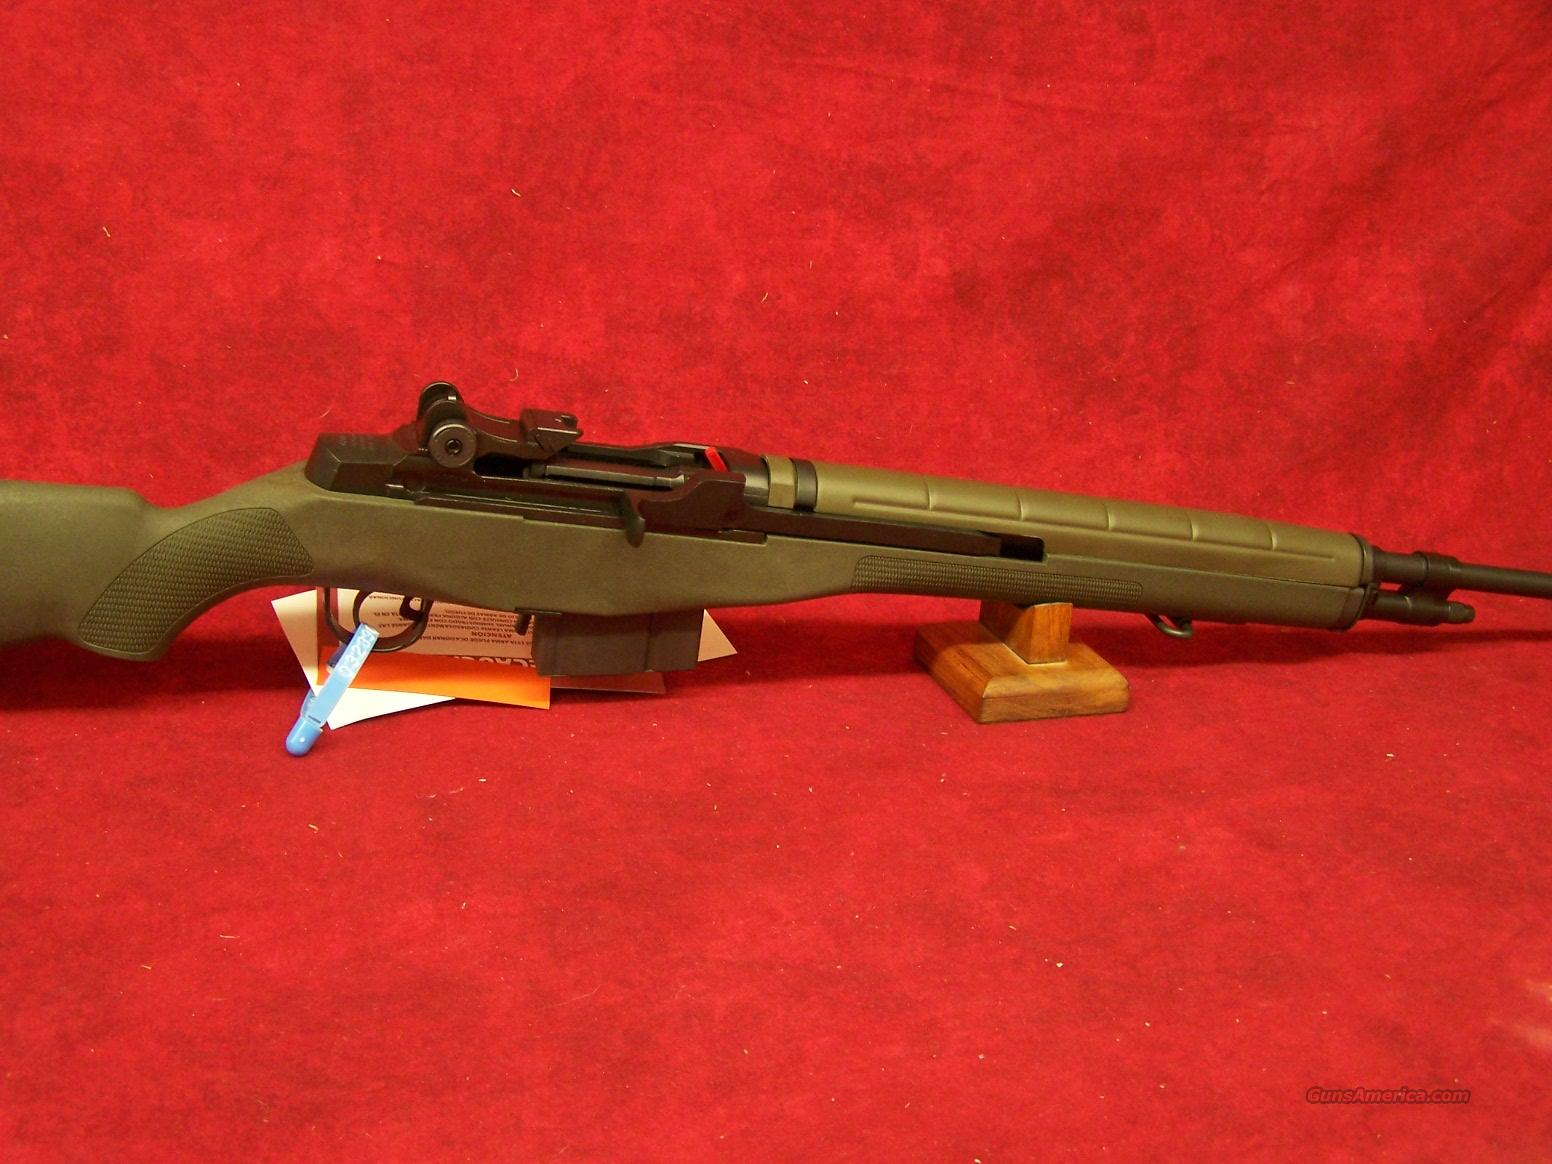 Springfield Armory Loaded M1A with National Match Barrel .308 7.62 NATO Green synthetic stock blue barrel(MA9229)  Guns > Rifles > Springfield Armory Rifles > M1A/M14